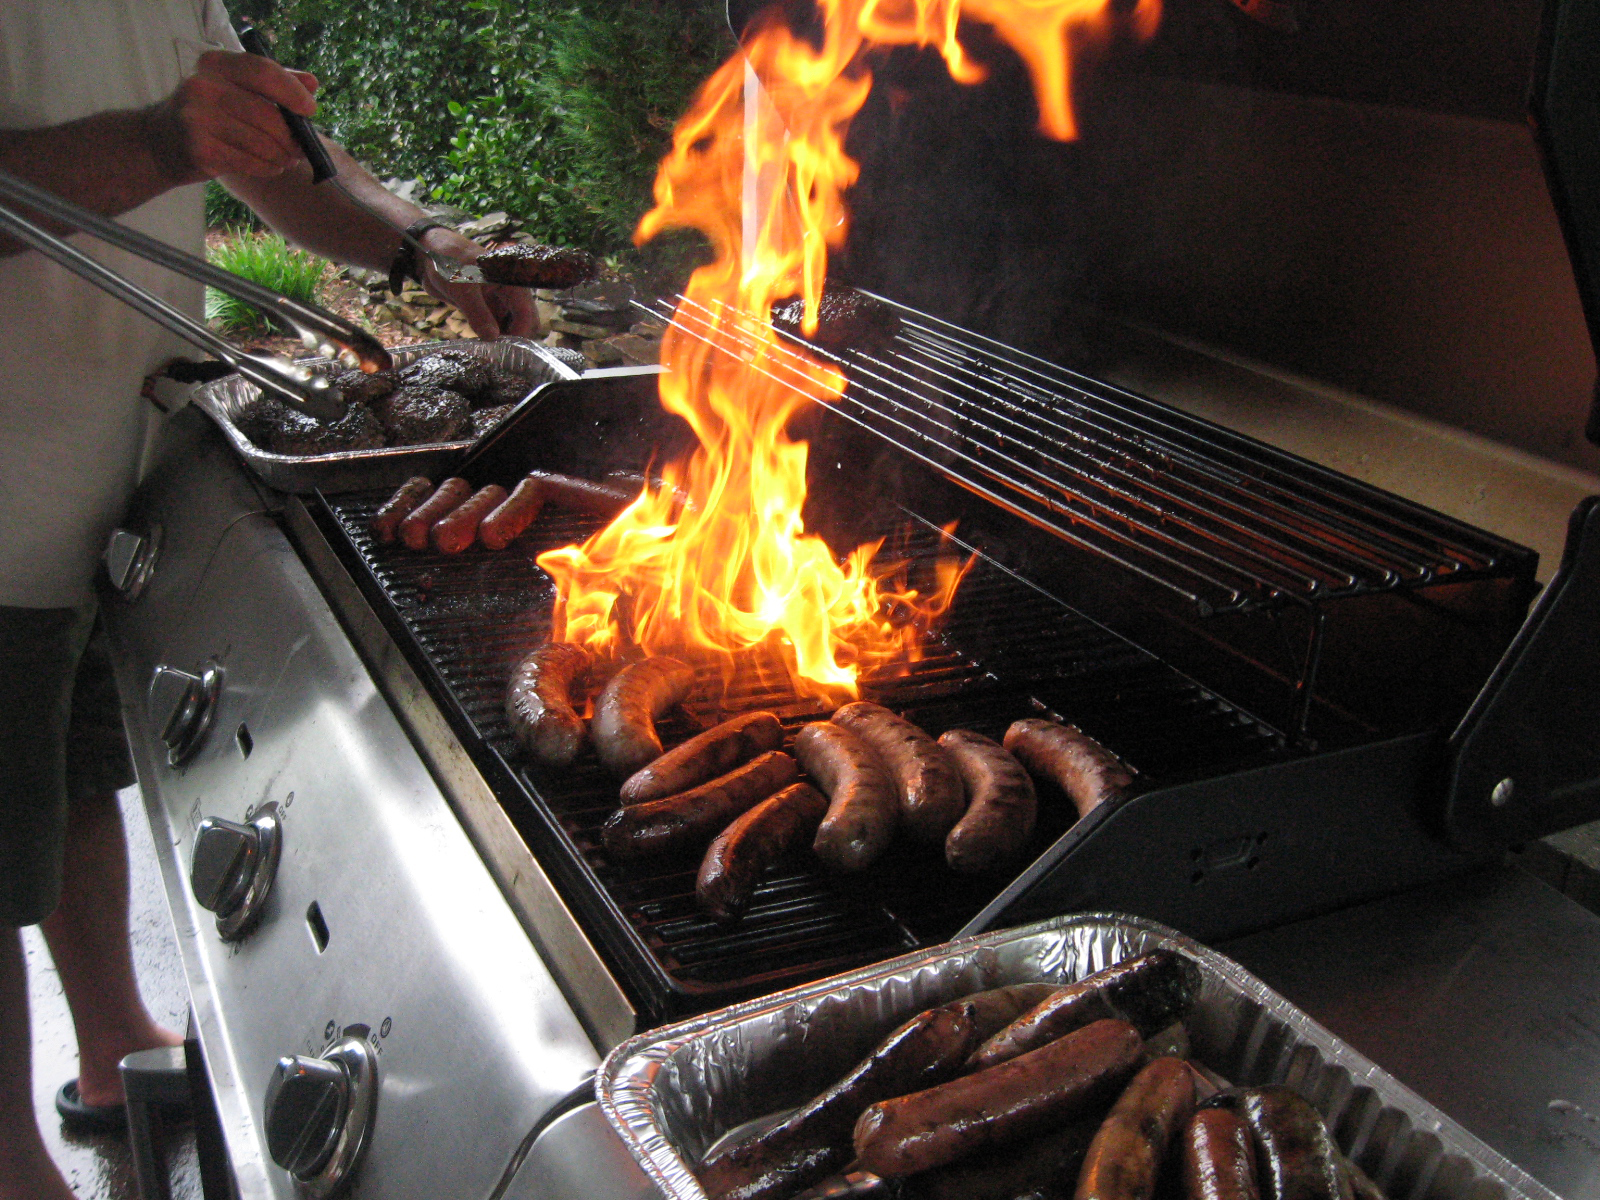 Grill Master Bbq.Barbecue Master Barbecue Fails From The Experts Including